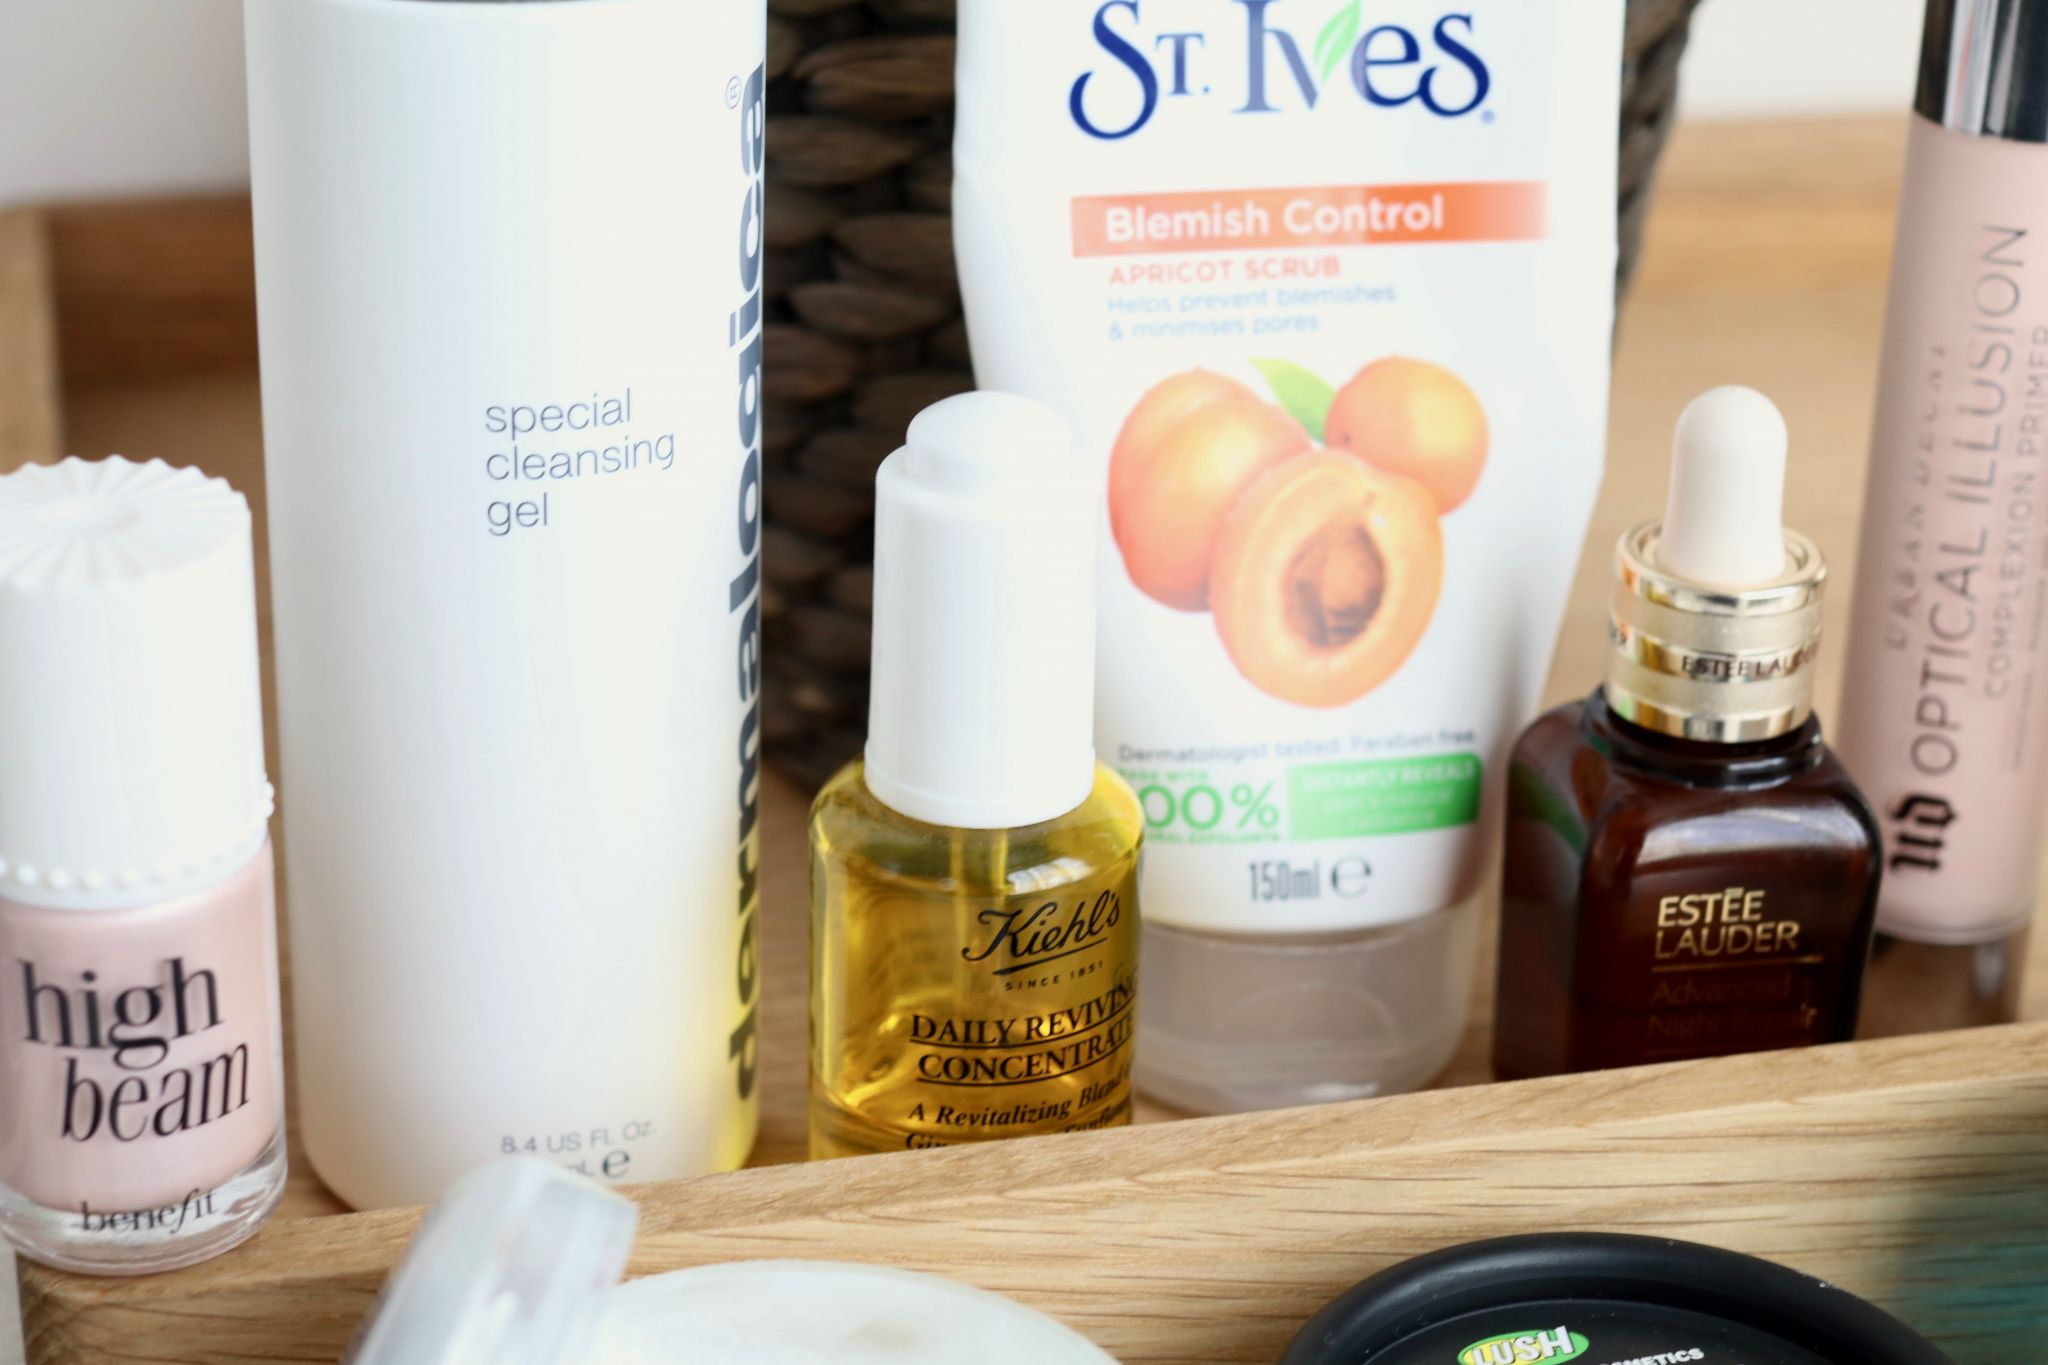 Mistakes to avoid if you have oily skin - Benefit high beam, St Ives, Estee Lauder, Urban Decay primer, Kiehl's Daily Reviving Concentrate, Dermalogica